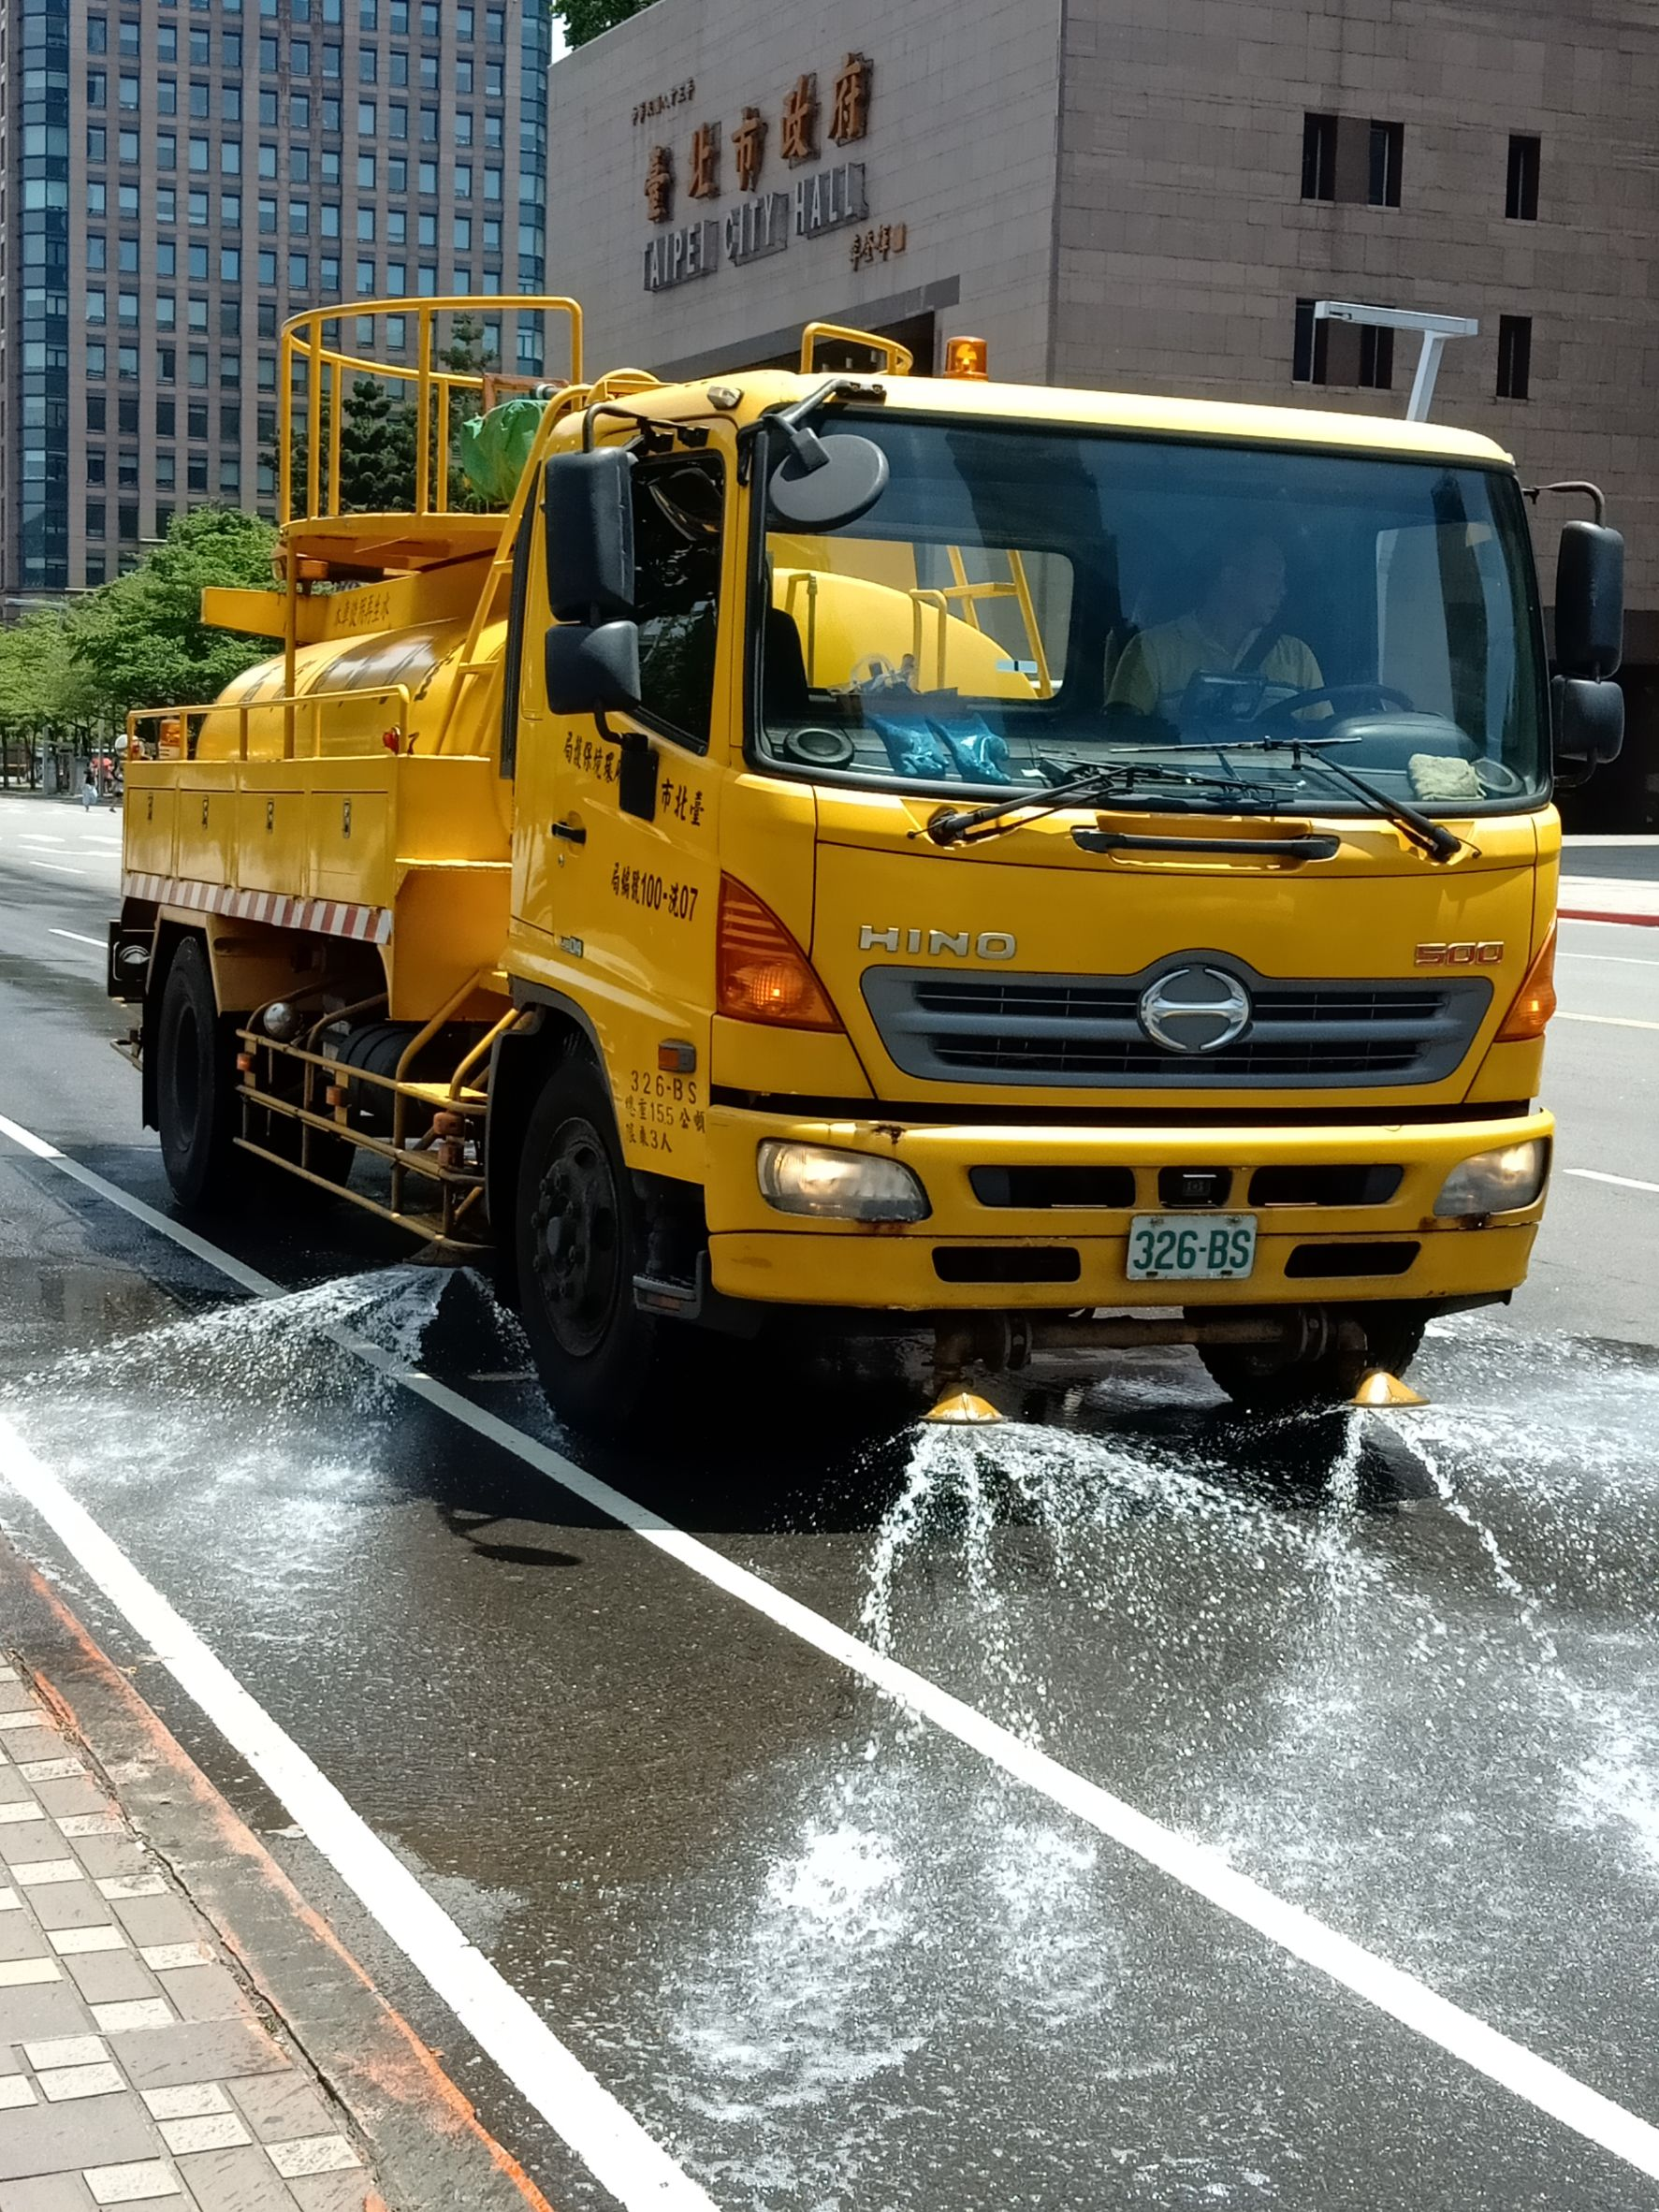 DEP dispatched 5 sprinkler trucks to cool down road surface temperatures by sprinkling a total of 150 tons of water